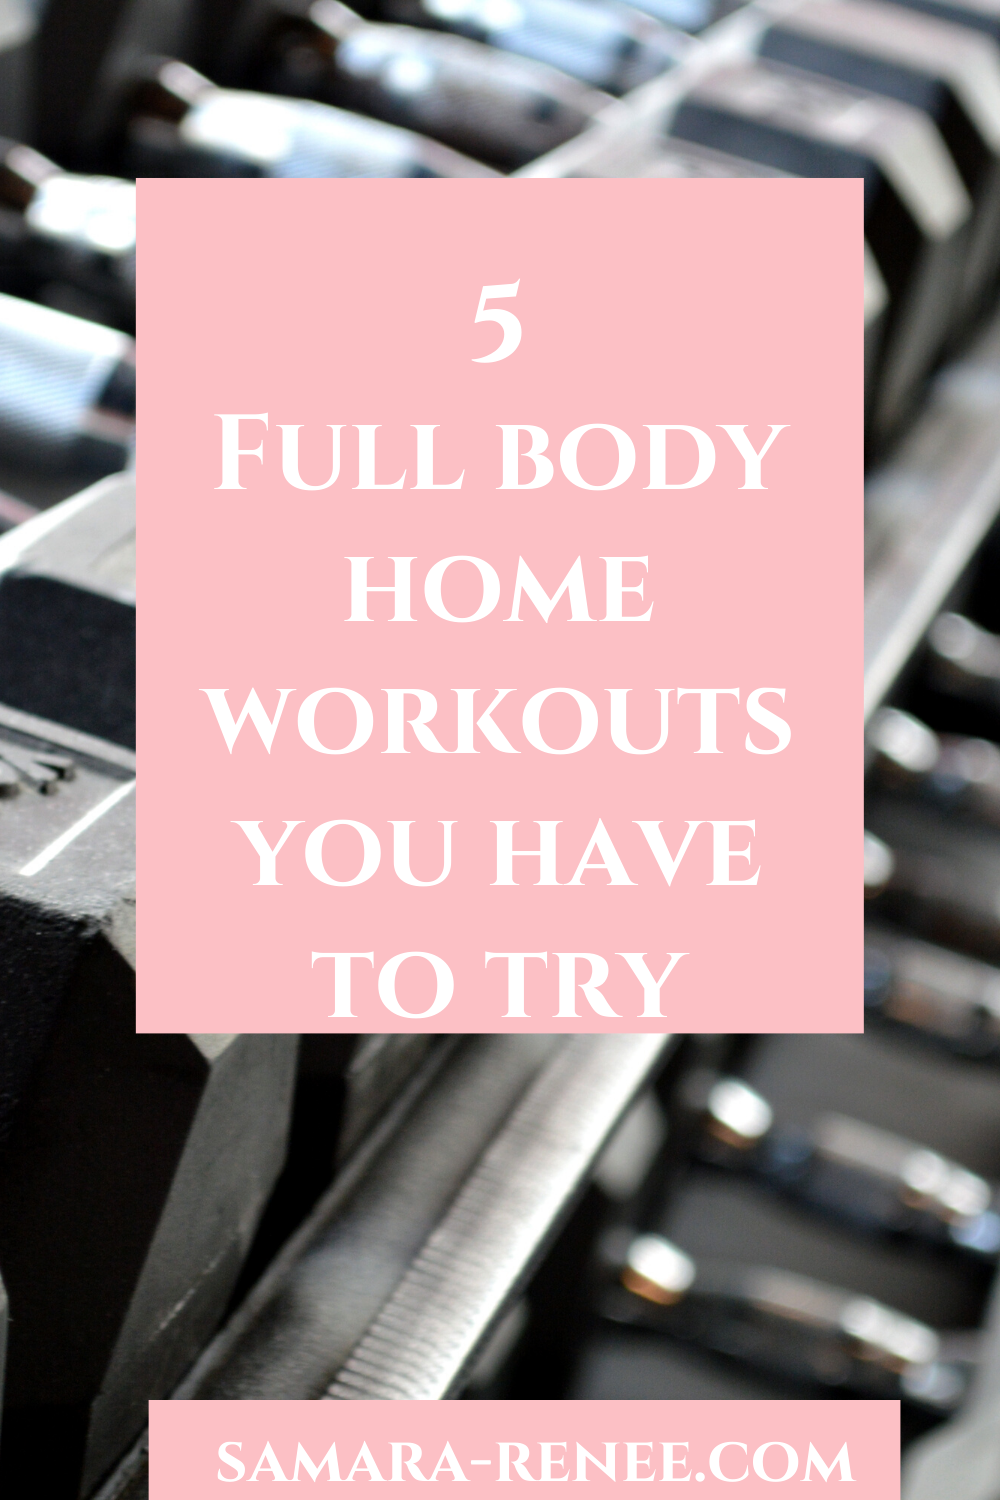 Are you looking to shed some extra pounds? Check out my article and be ready to sweat. #fitness #wor...